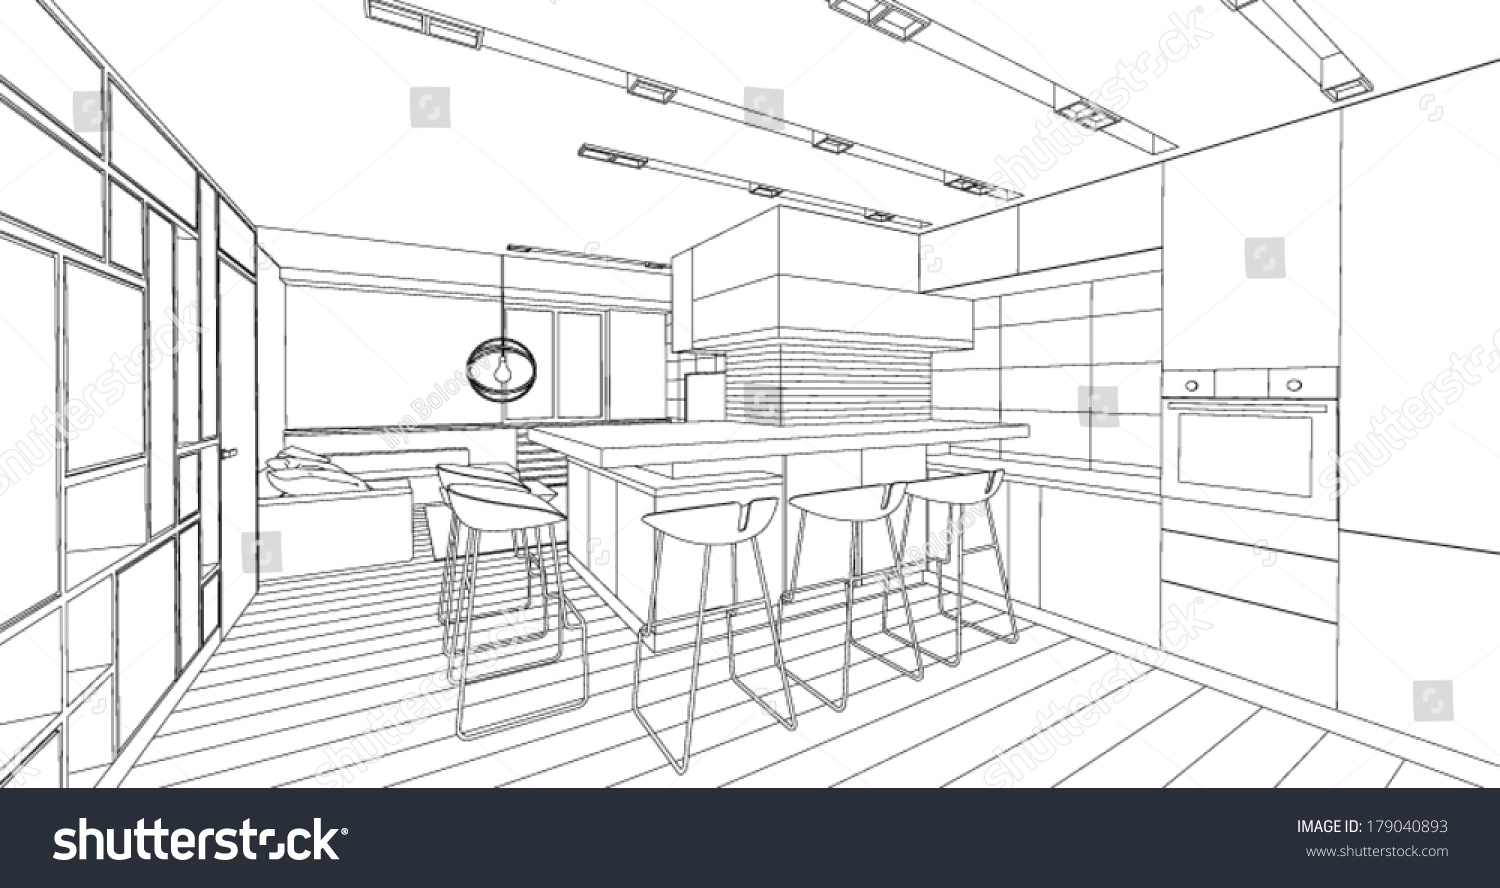 Interior vector drawing architectural design living stock for Interior design images vector